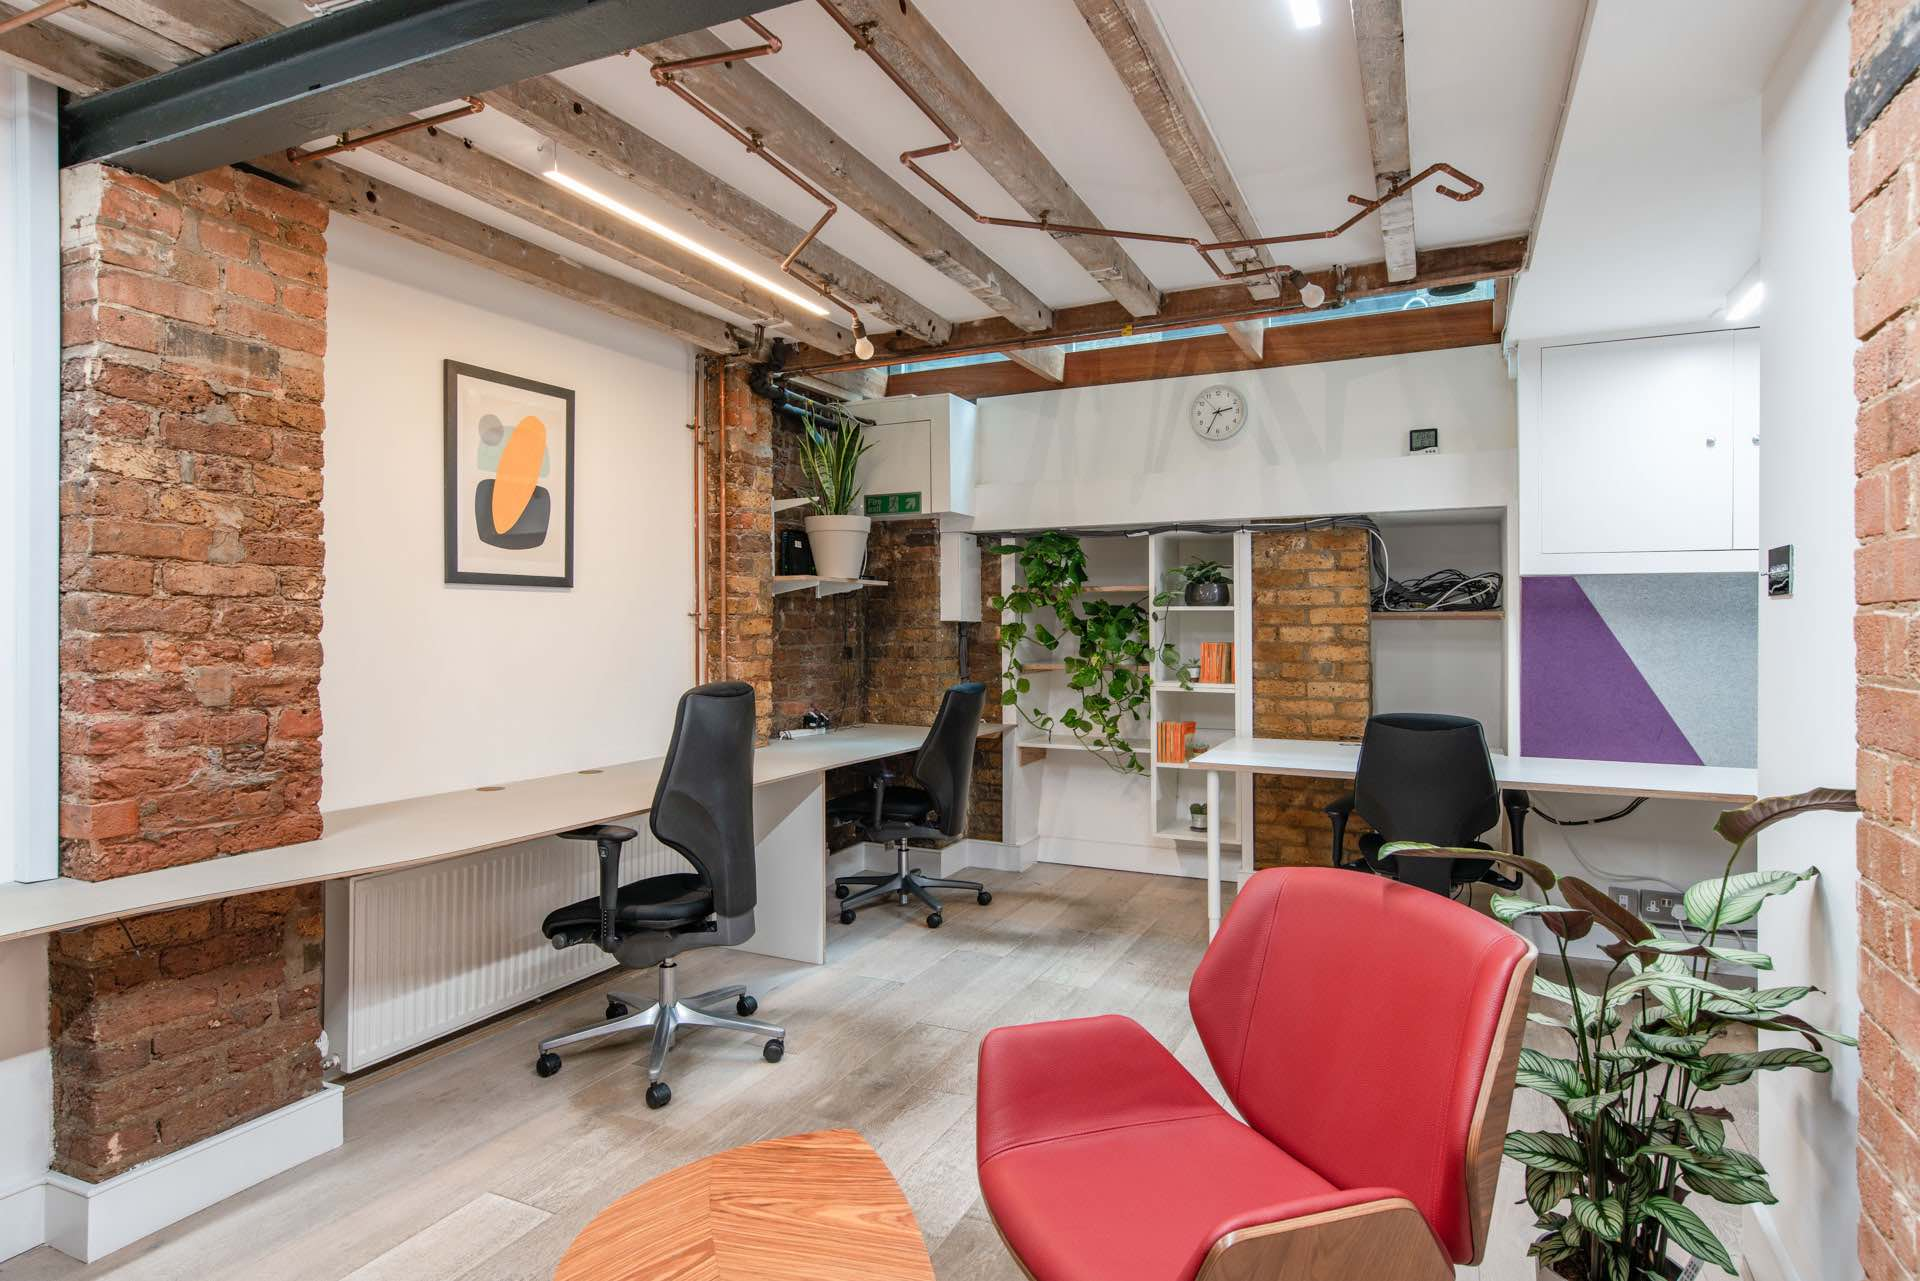 A guide to office rent in London - Office rent in Clerkenwell